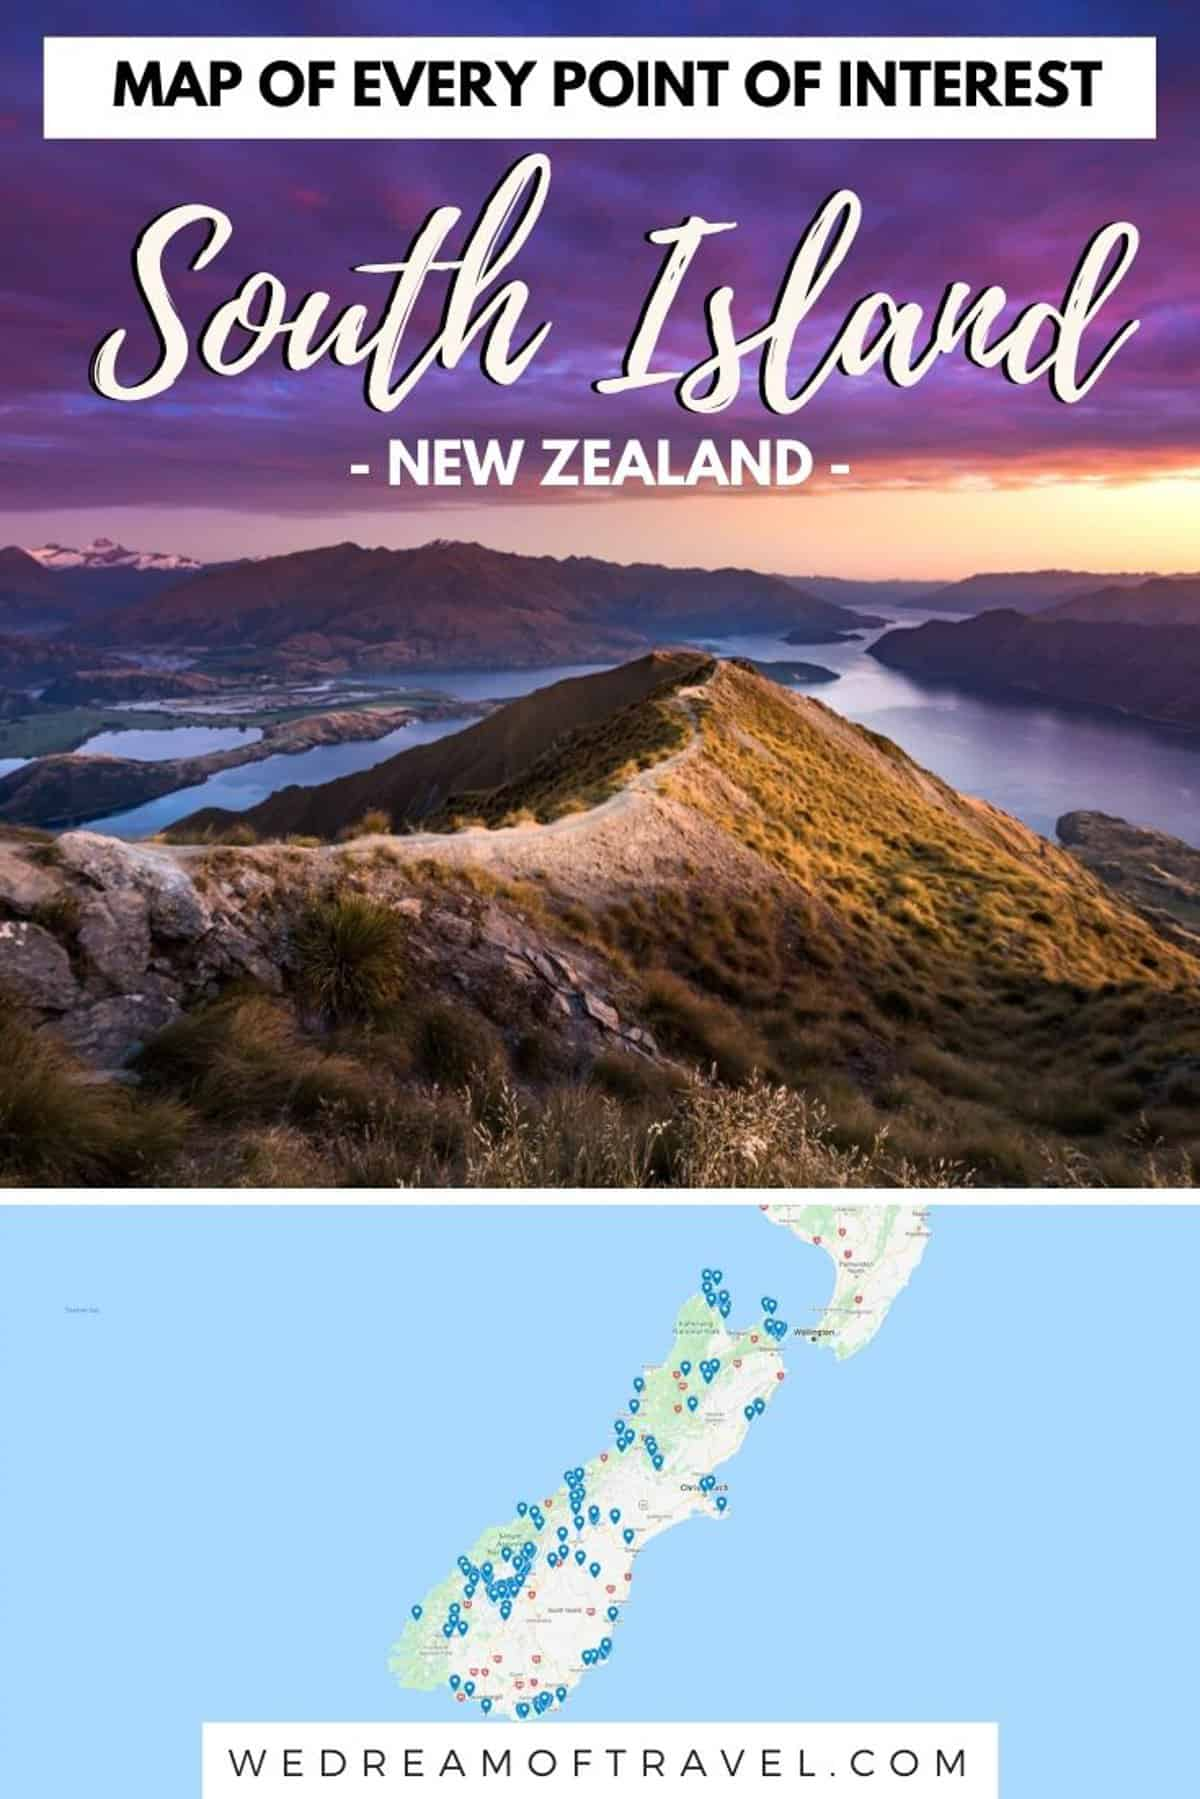 The ULTIMATE South Island New Zealand Map.  Looking for the best places to visit on the South Island, NZ?  This map has it all!  All the best points of interest to help you plan your best New Zealand travels.